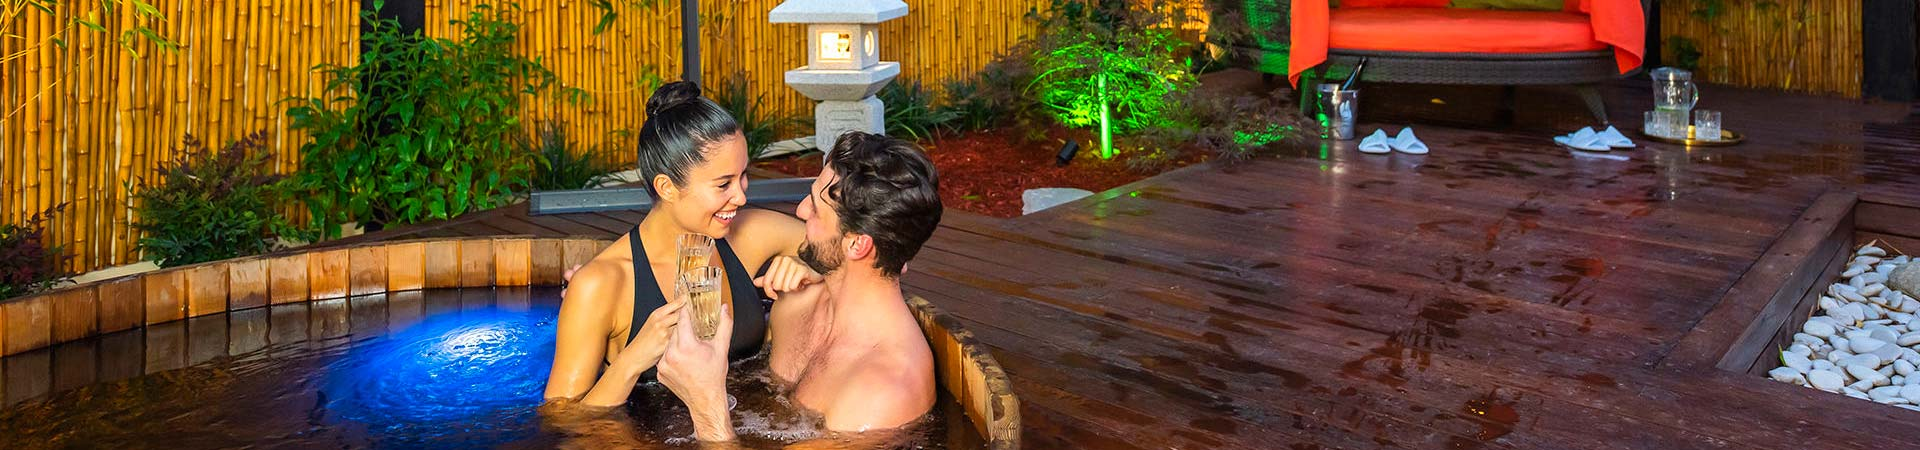 Japanese Mountain Retreat Mineral Springs and Spa header